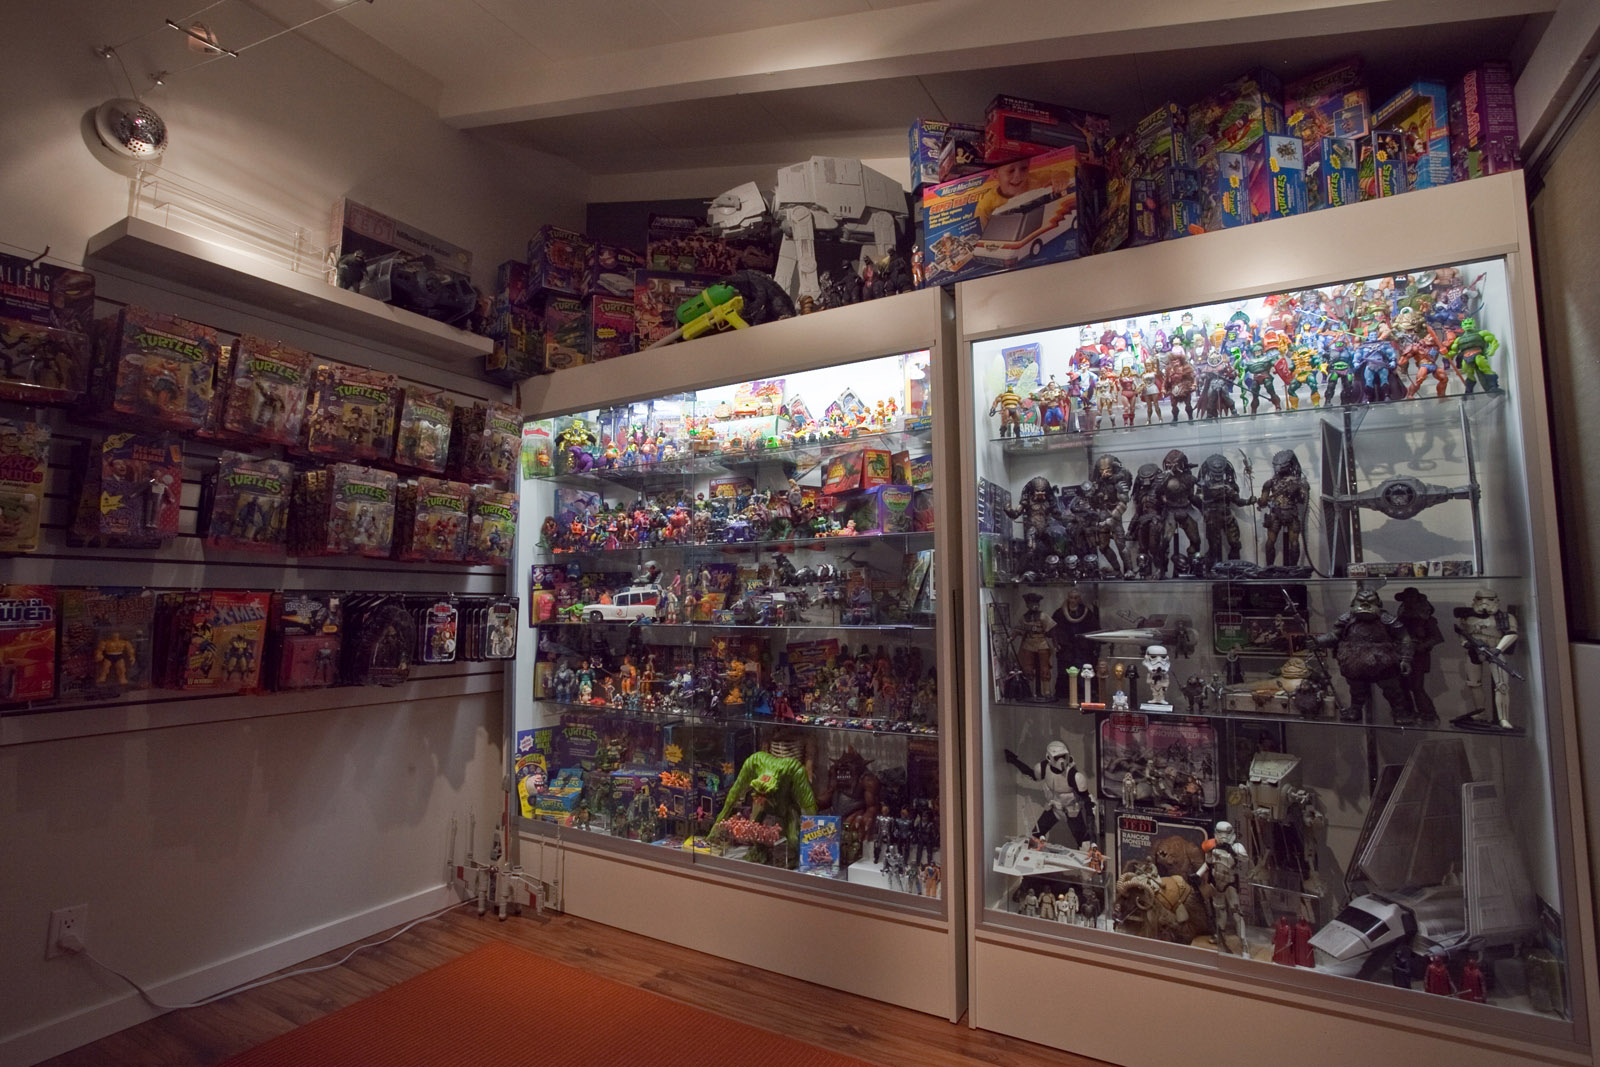 80 Toy Action Figure Shelves - chriscollection1_Beautiful 80 Toy Action Figure Shelves - chriscollection1  Pic_335359.jpg